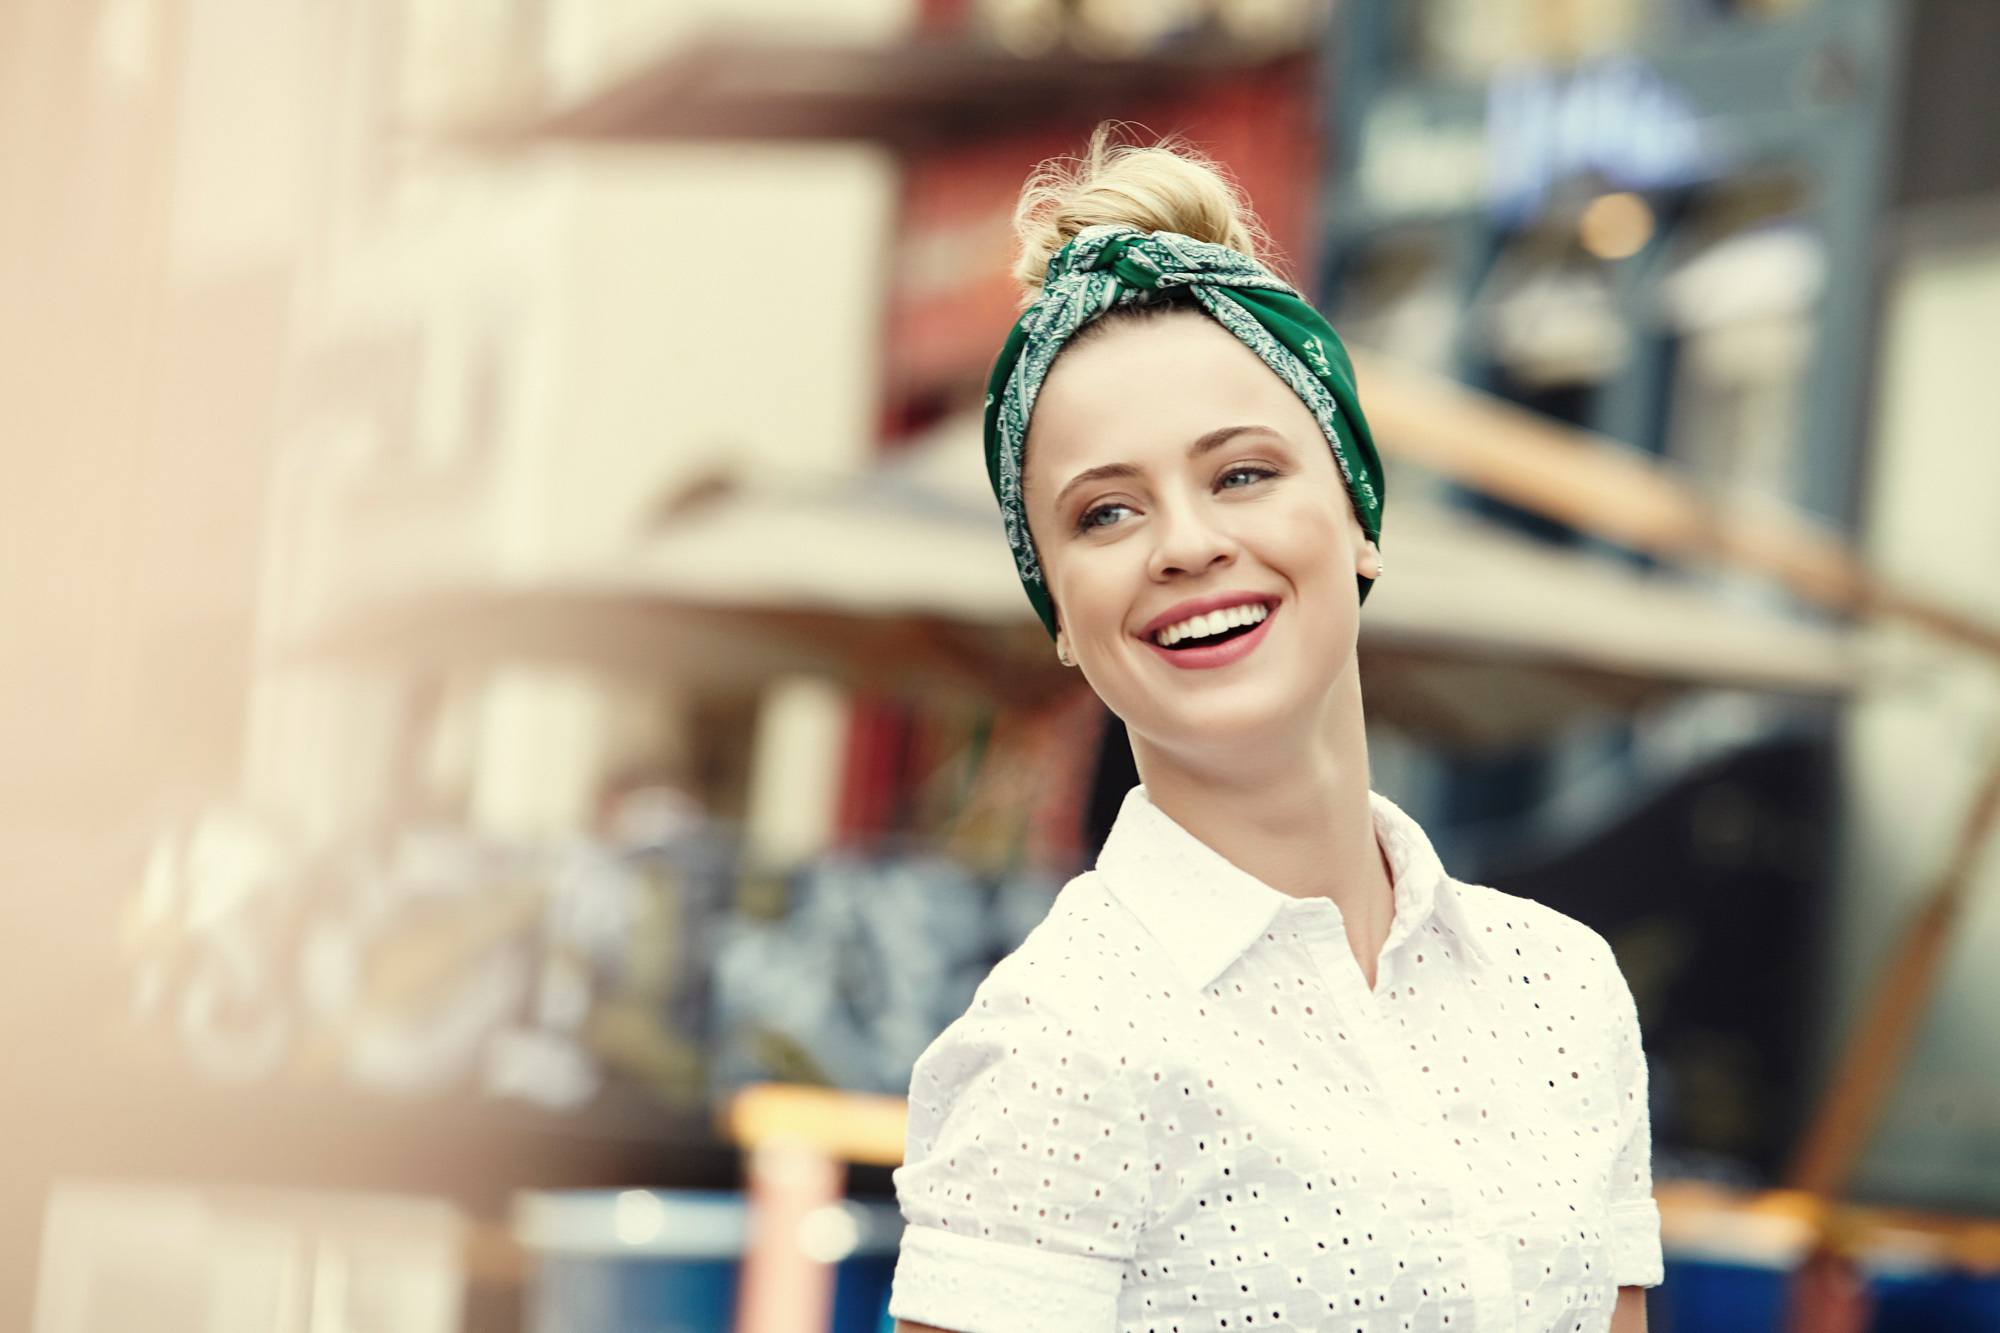 Easy commuter-friendly hairstyles: Blonde woman with a bun and bandanna wearing a white blouse outdoors